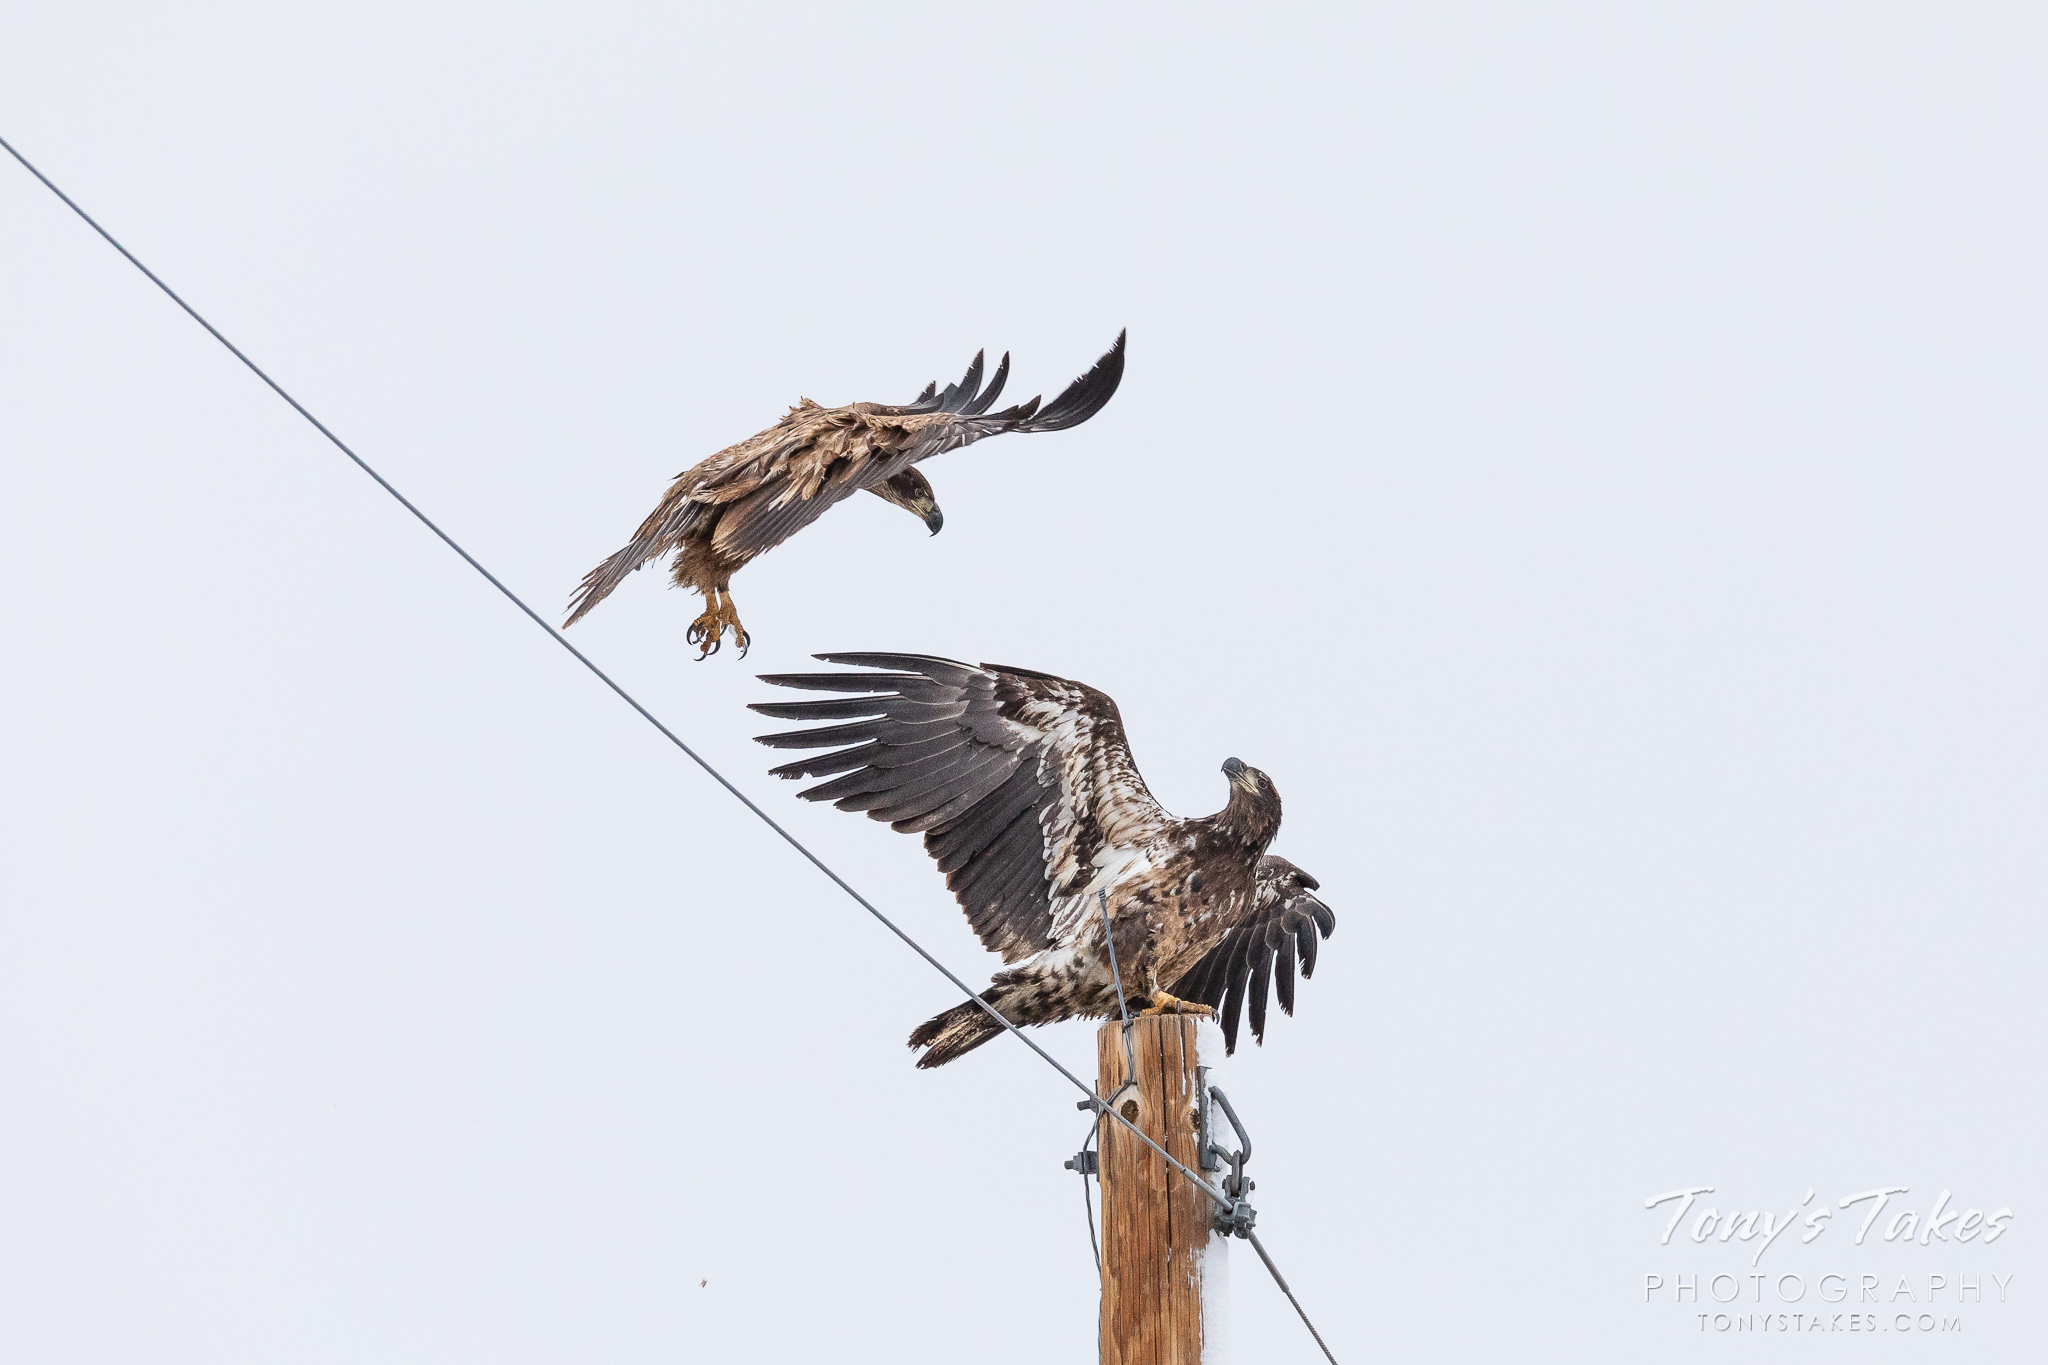 Juvenile bald eagles battle over a roost